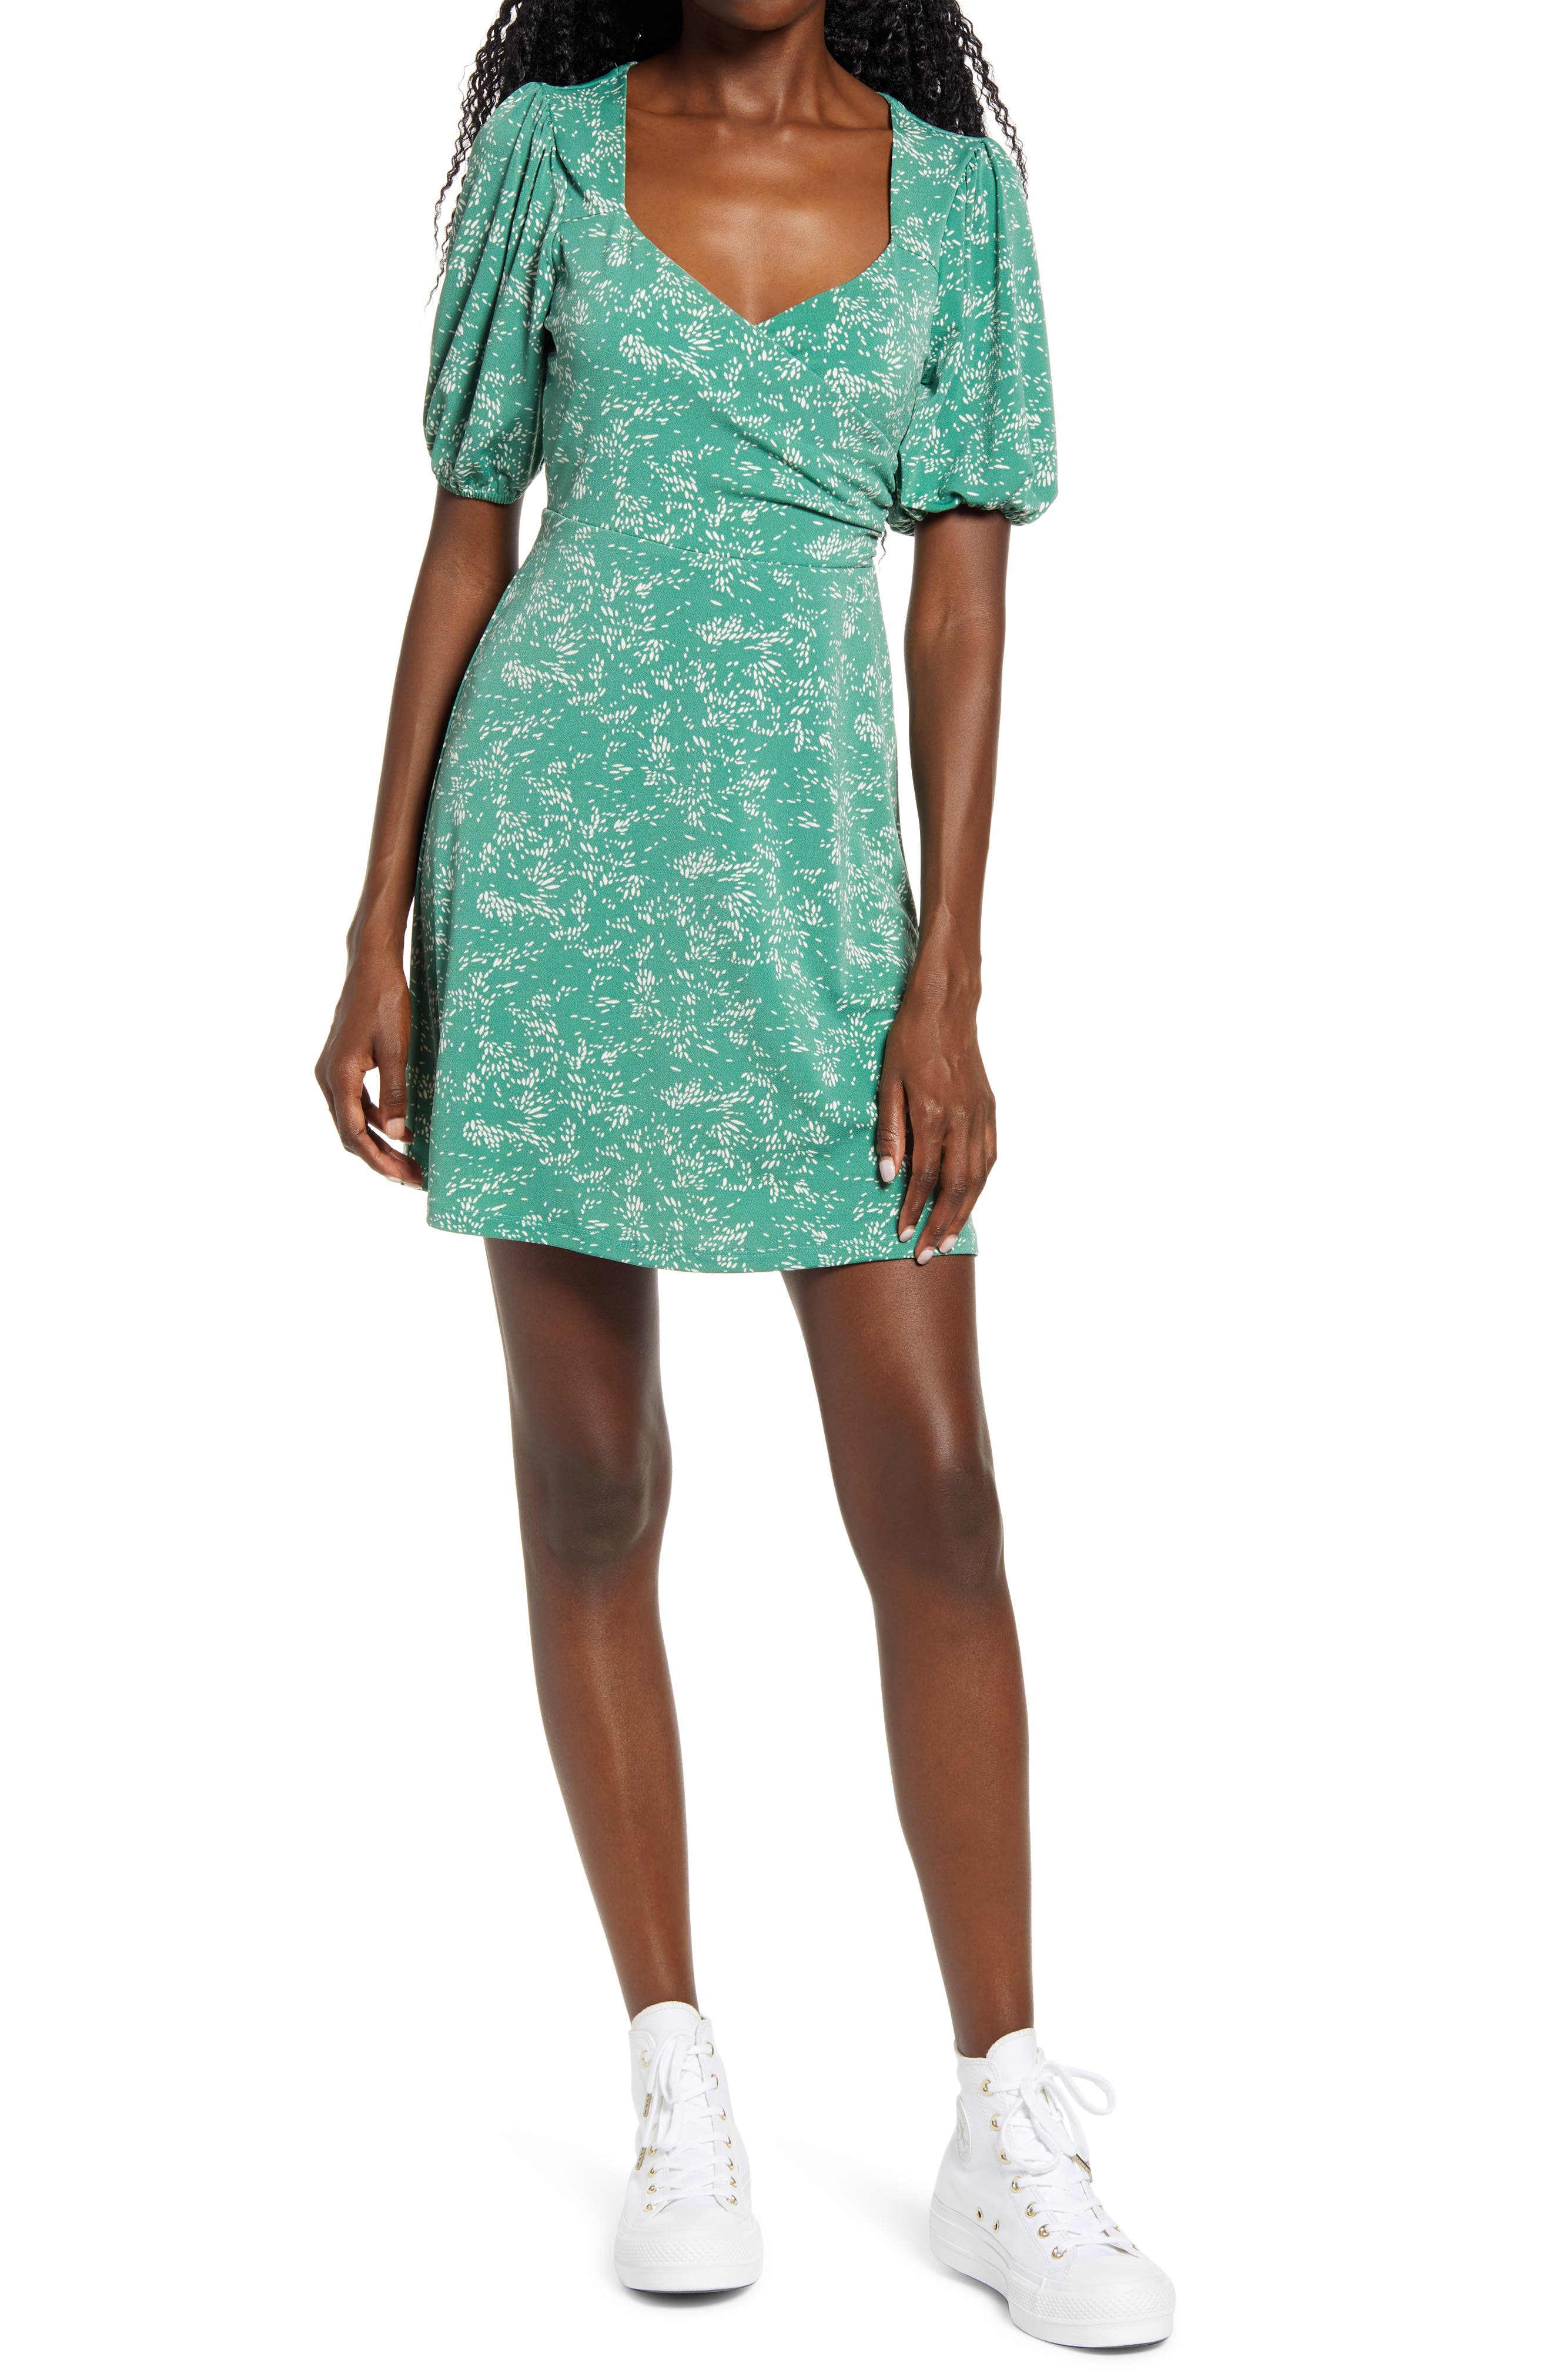 A sweet print enlivens this pretty, puff-sleeve frock styled with a cross-front bodice and a swingy skirt. Style Name: All In Favor Surplice Minidress. Style Number: 6032181. Available in stores.